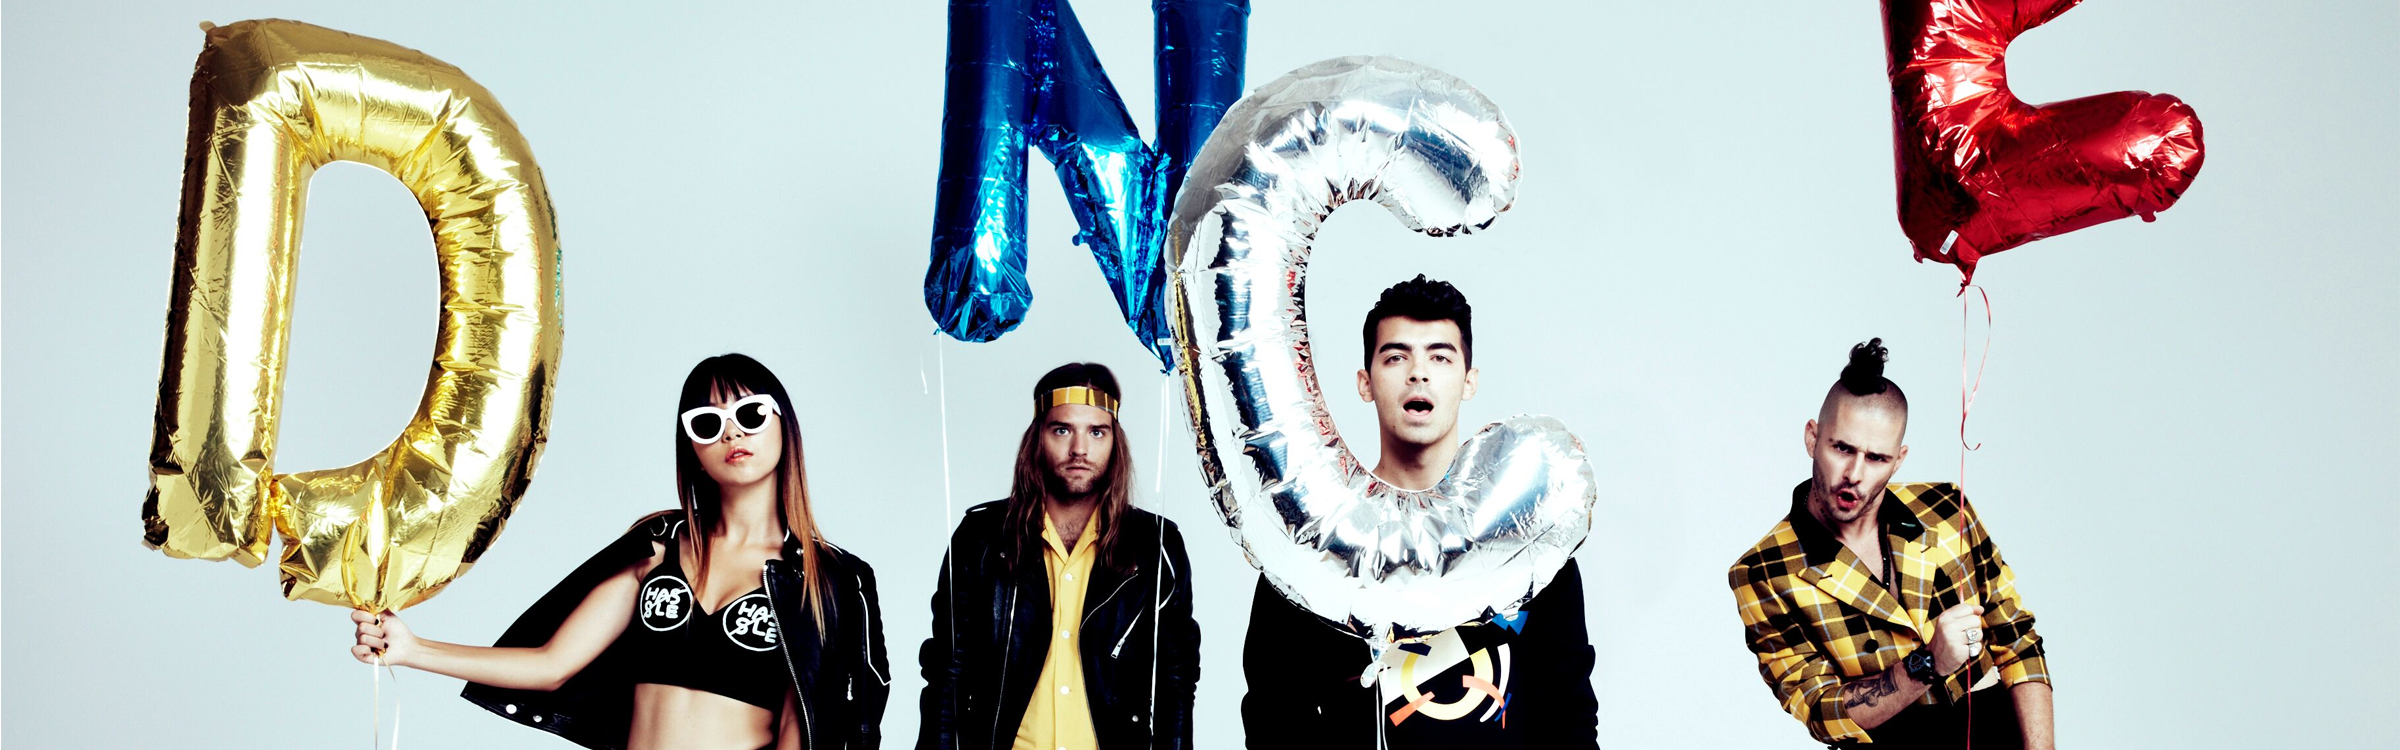 Dnce bodymoves header